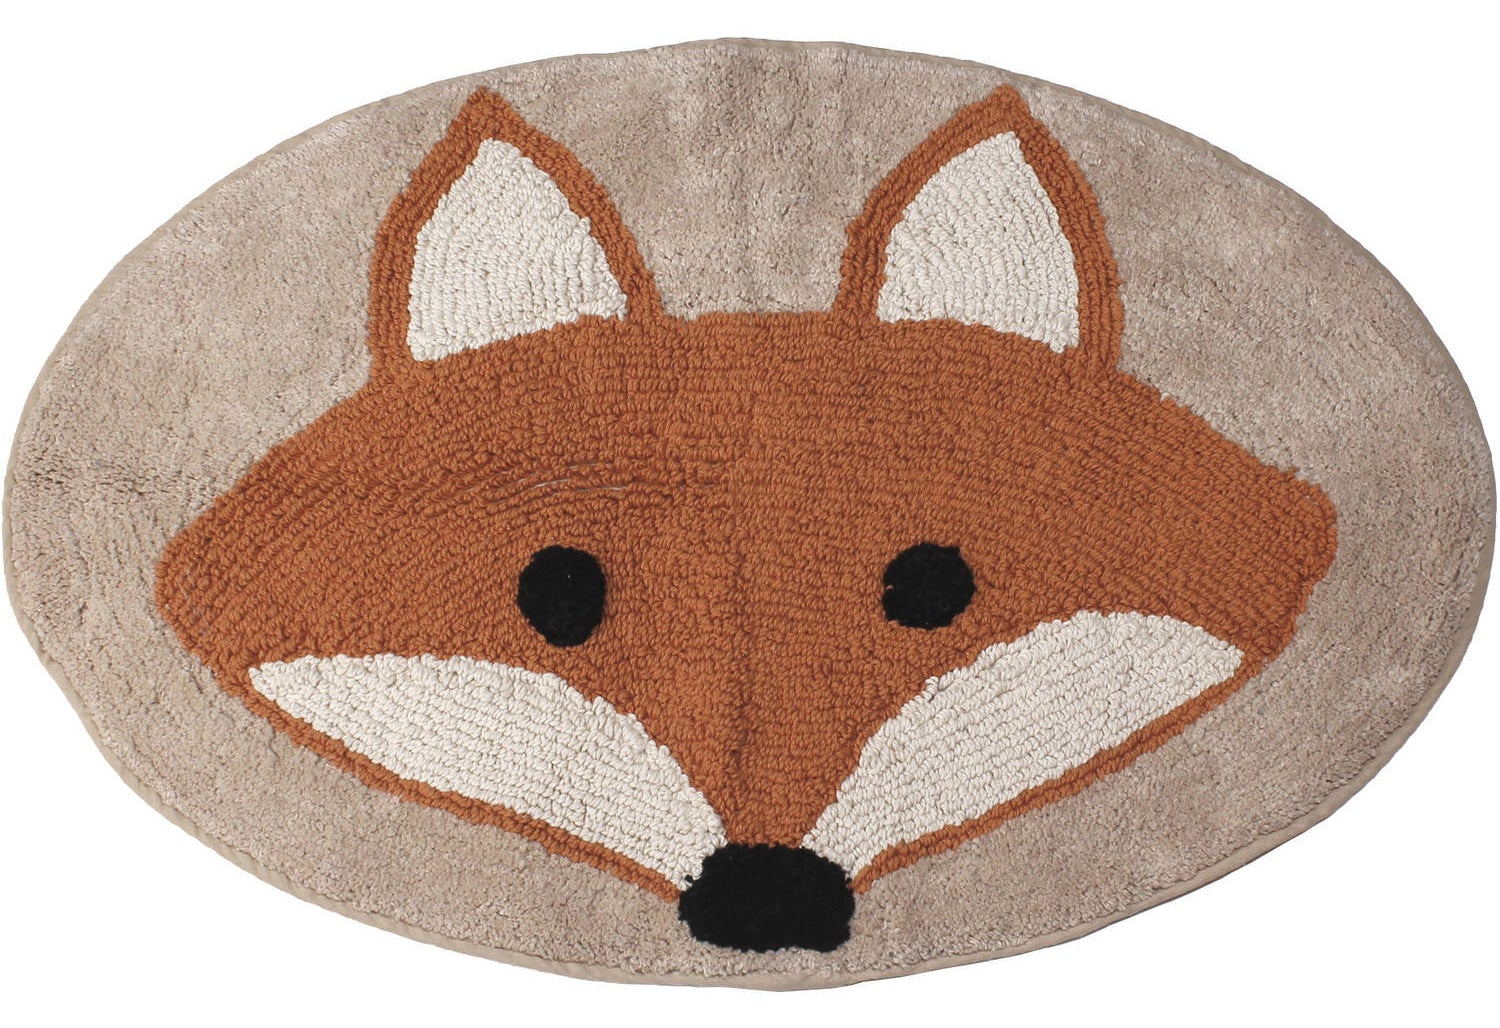 An animated fox bathroom mat